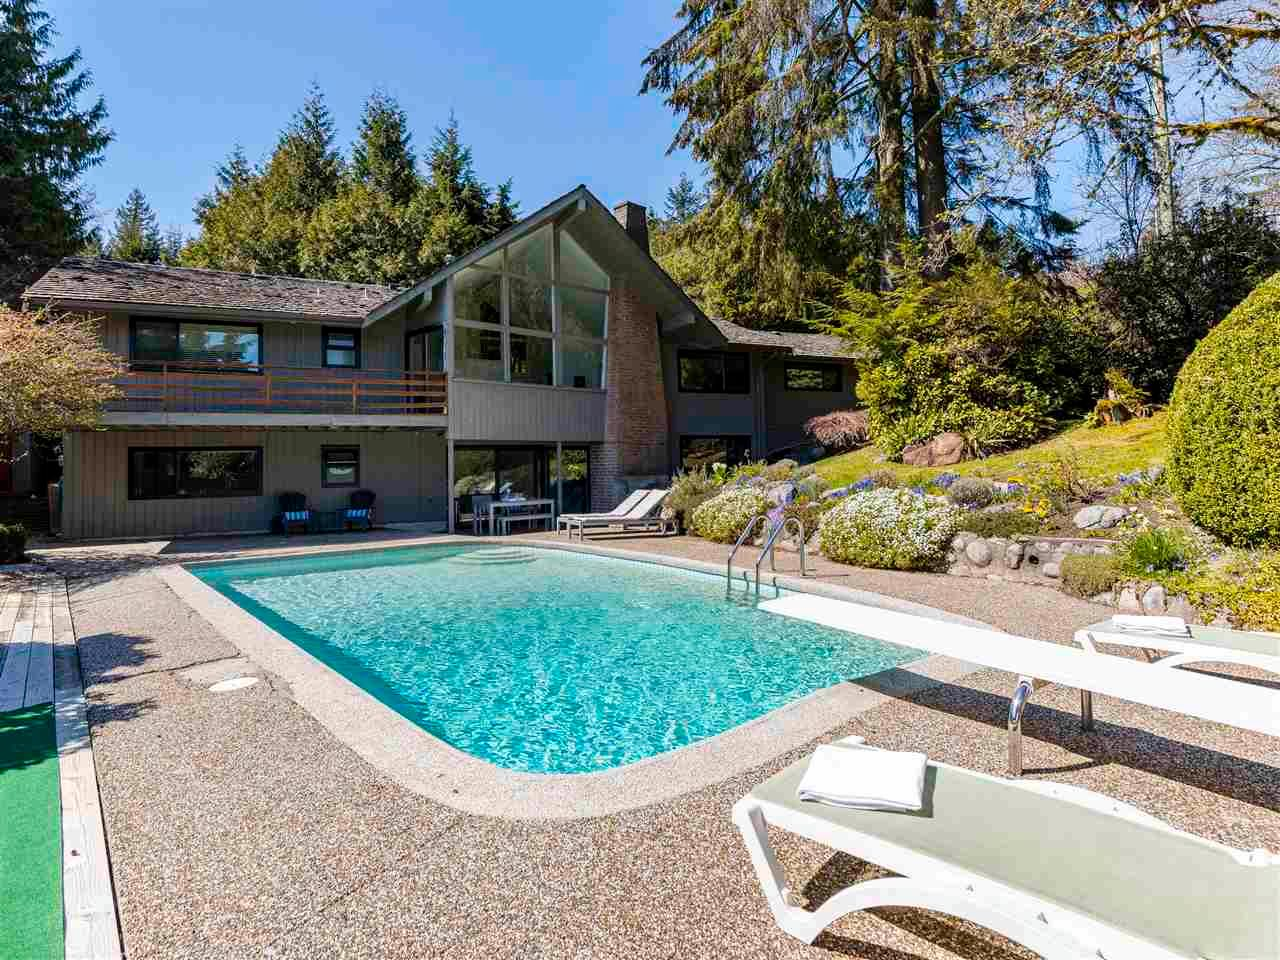 Main Photo: 86 STEVENS Drive in West Vancouver: British Properties House for sale : MLS®# R2568373